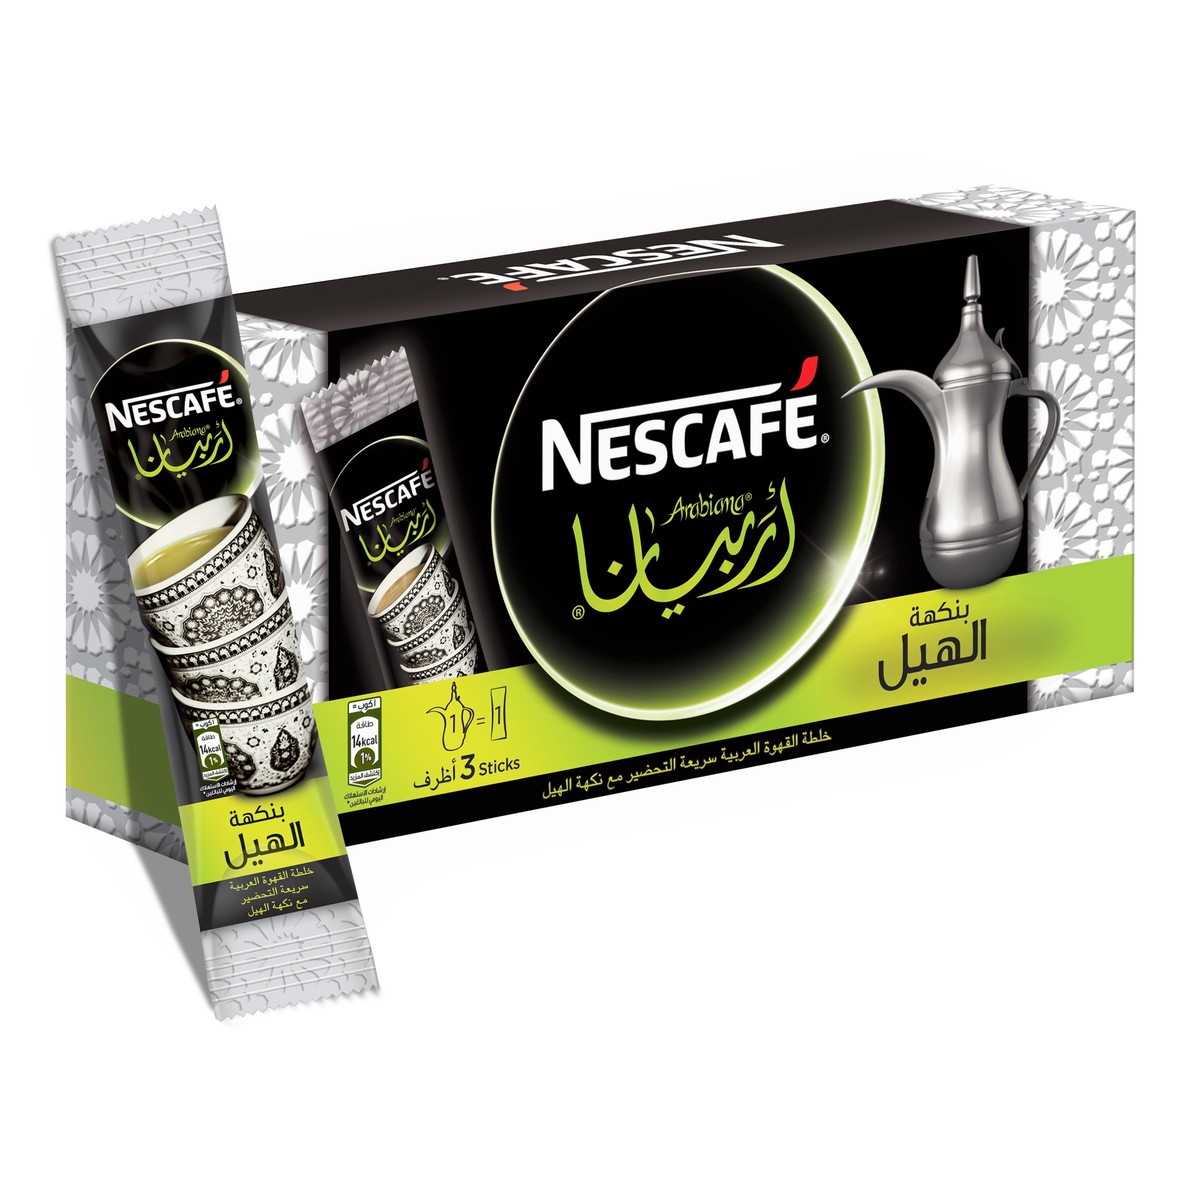 Nescafe Instant Arabic Coffee with Cardamom Arabiana Coffee 17g (pkt/3pcs)